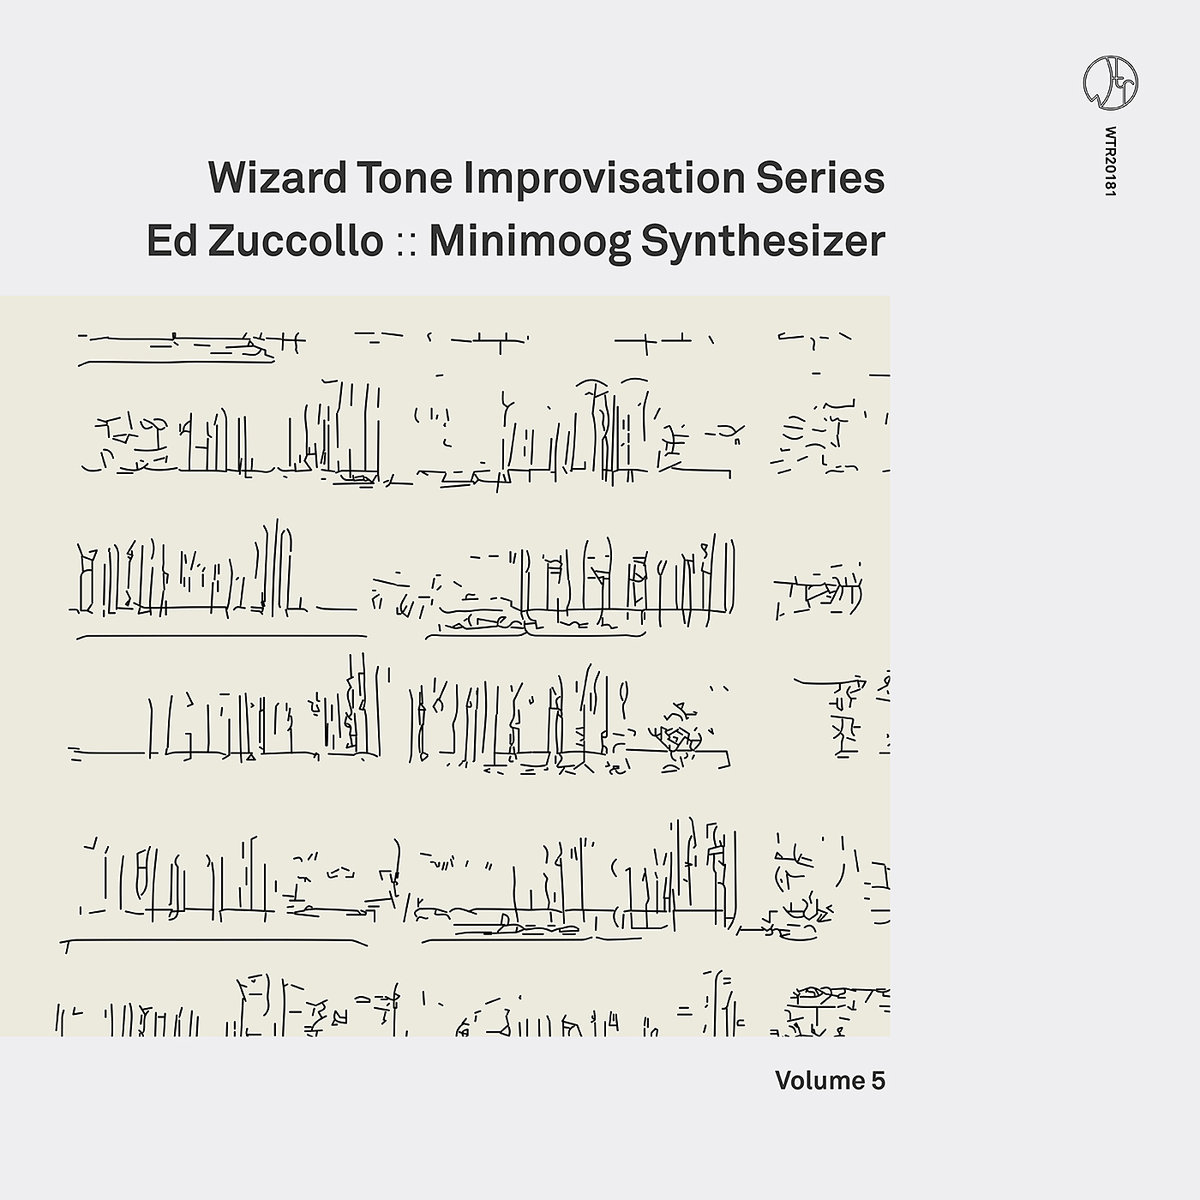 Wizard Tone Improvisation Series Volume 5: Ed Zuccollo [Recorded, Mixed & Mastered (JB, JP & Audrey Newcombe), Produced (AP), WTR]